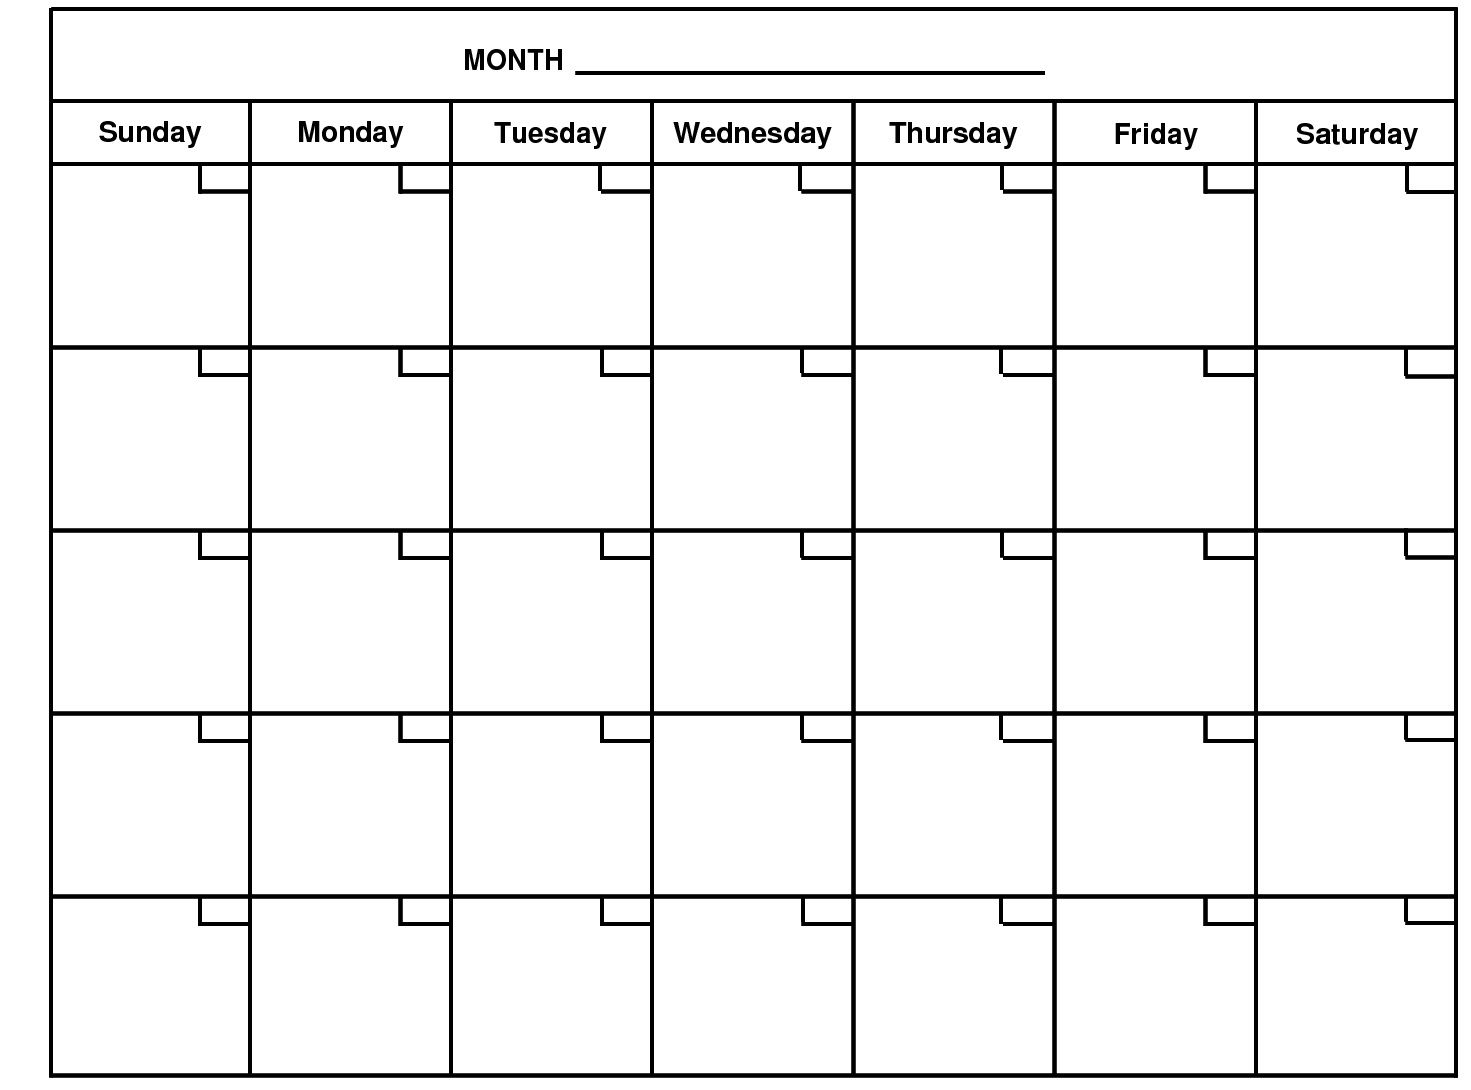 Calendar Monthly : Month calendar monthly projects to try